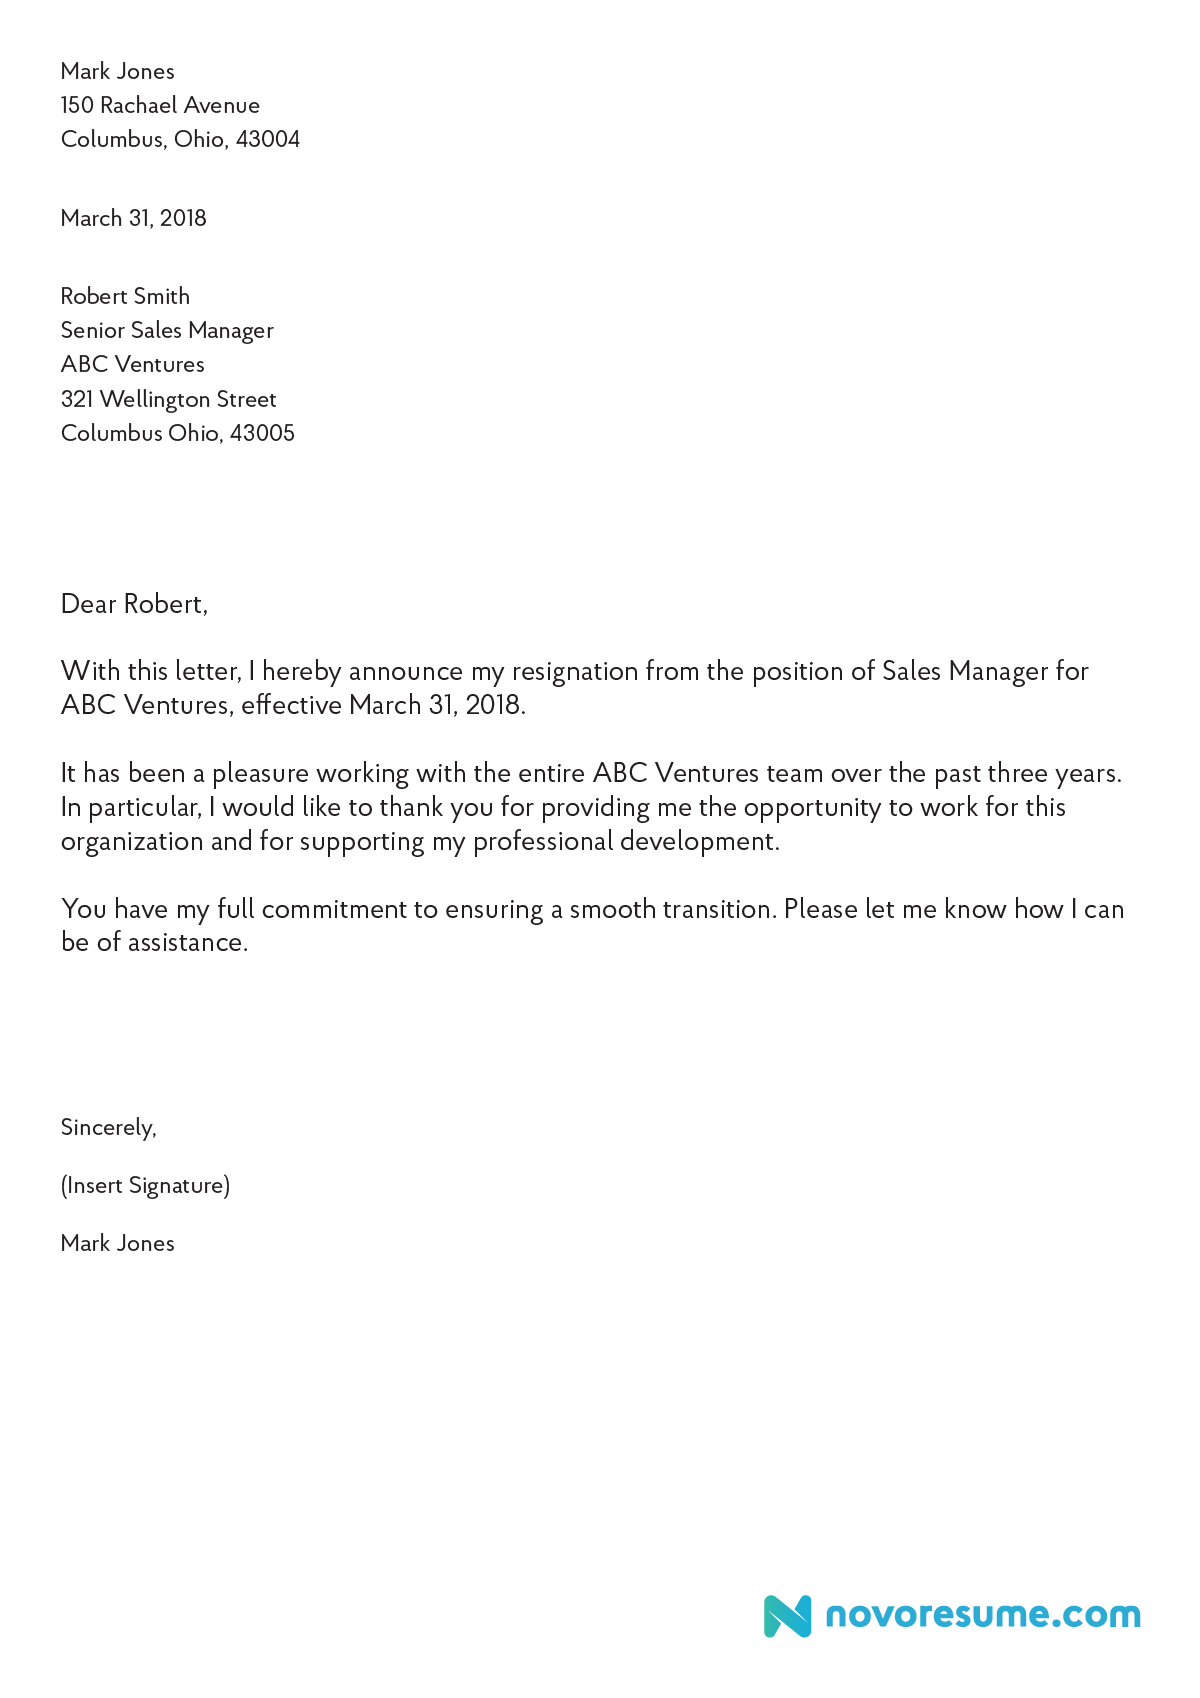 Resgination selol ink how to write a letter of resignation 2018 extensive guide resgination 11 sample resignation letter spiritdancerdesigns Image collections